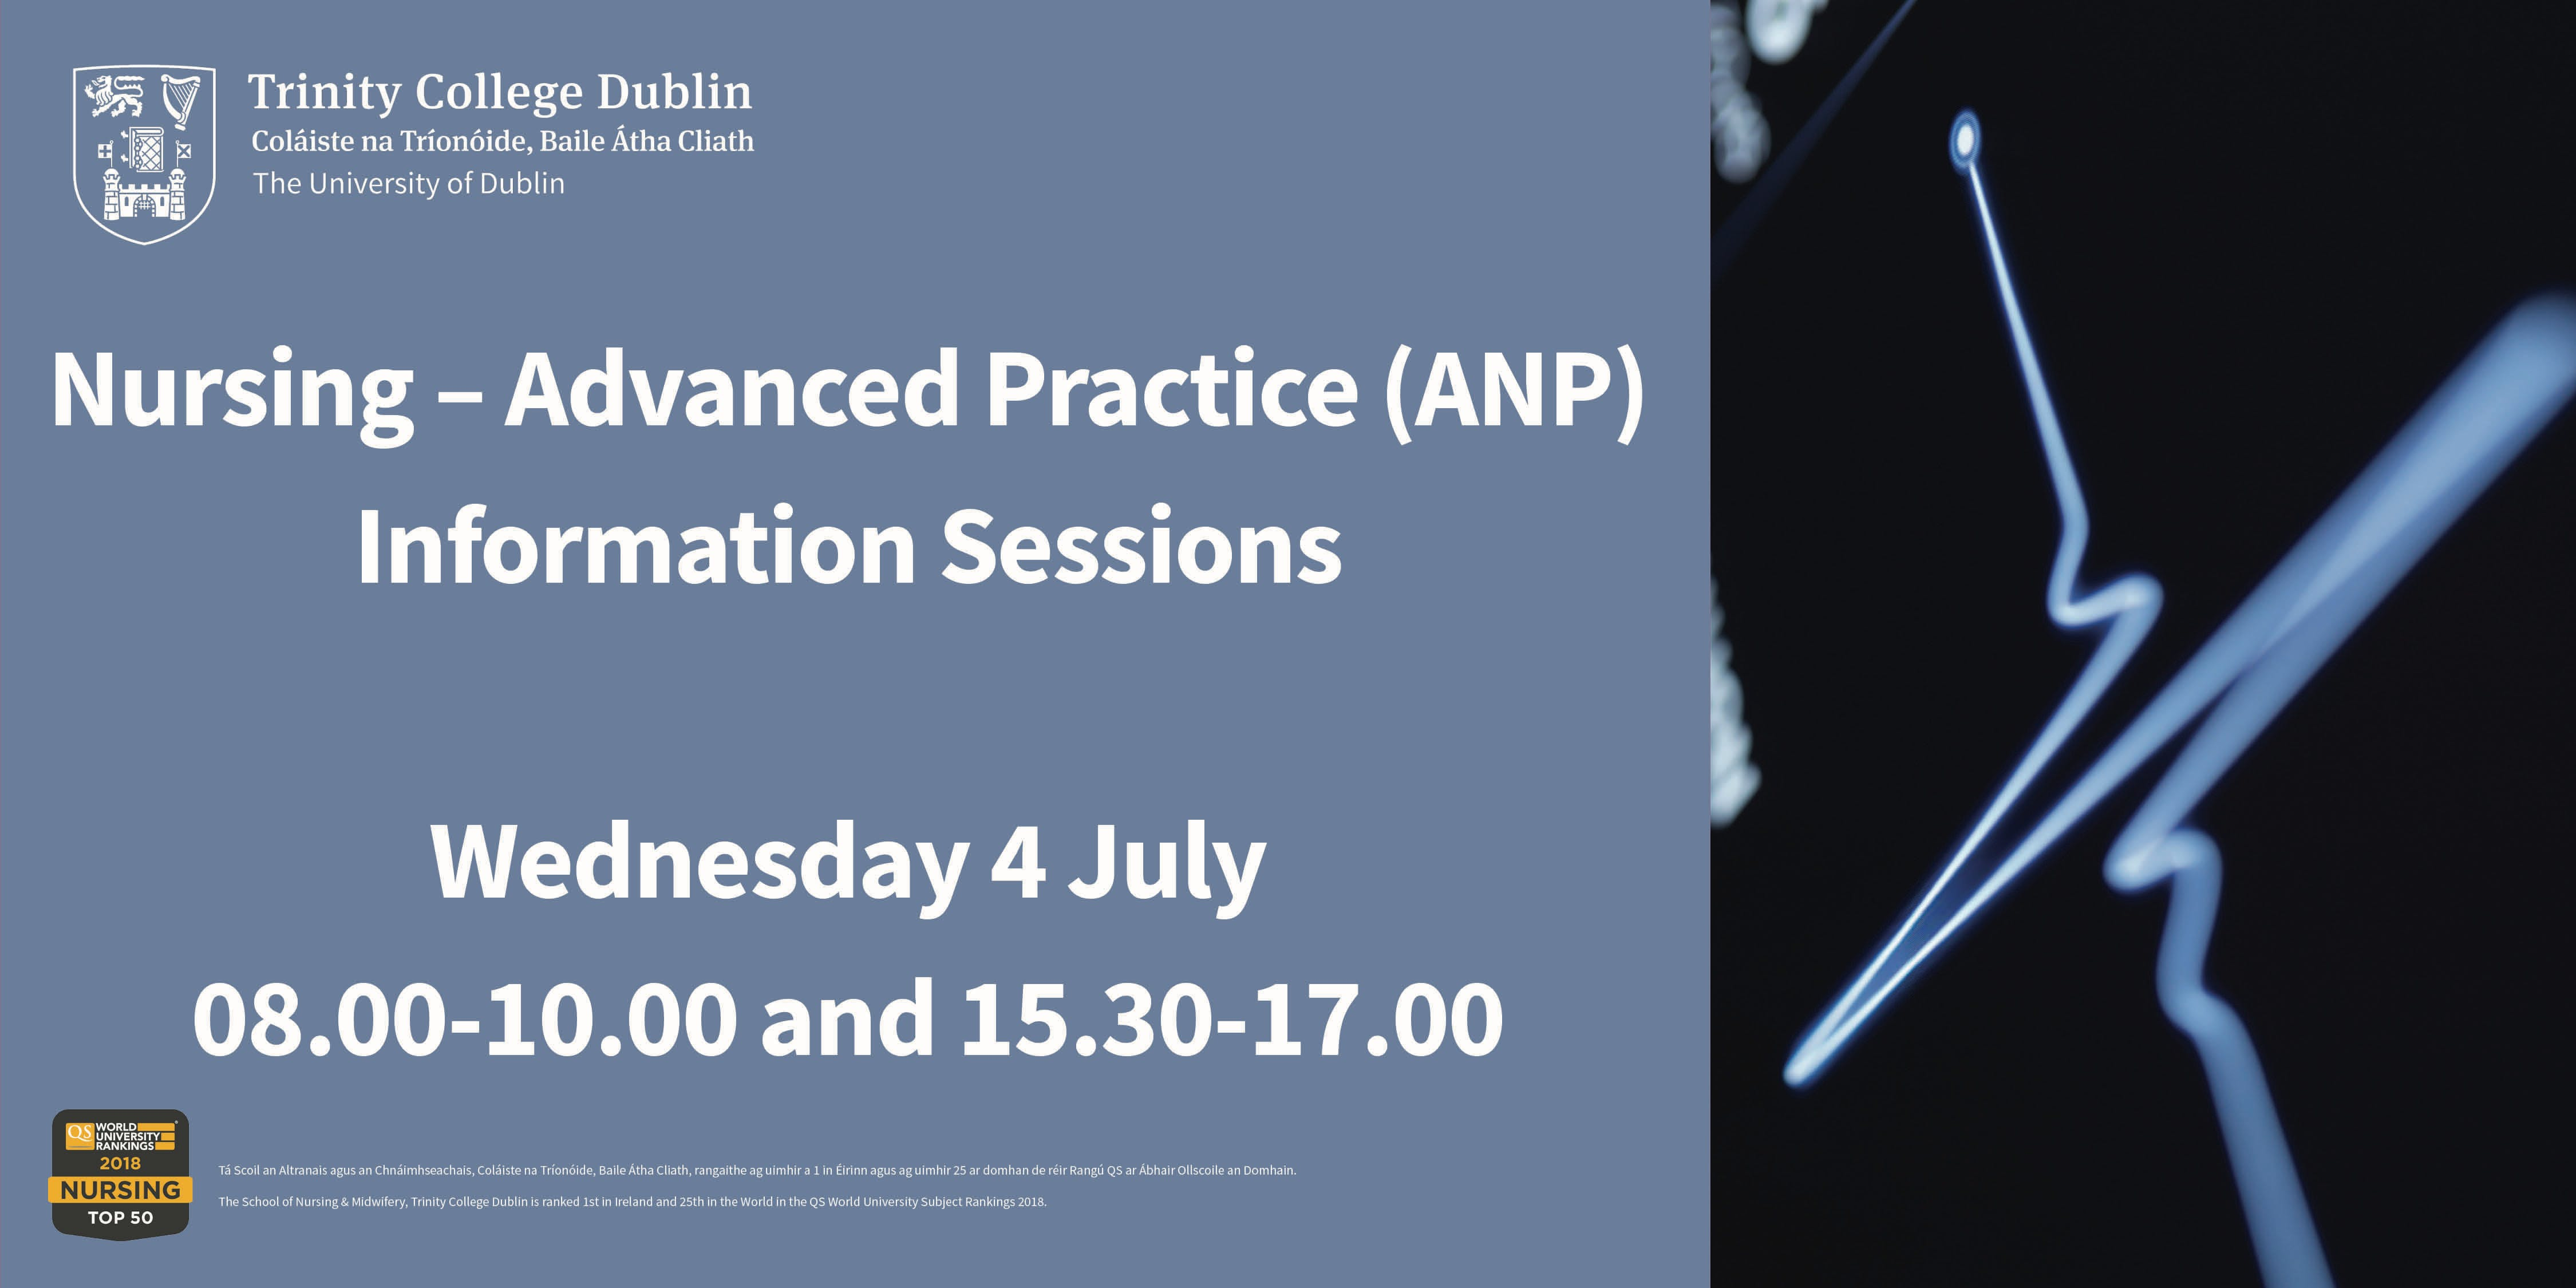 Nursing – Advanced Practice (ANP) Information Sessions at